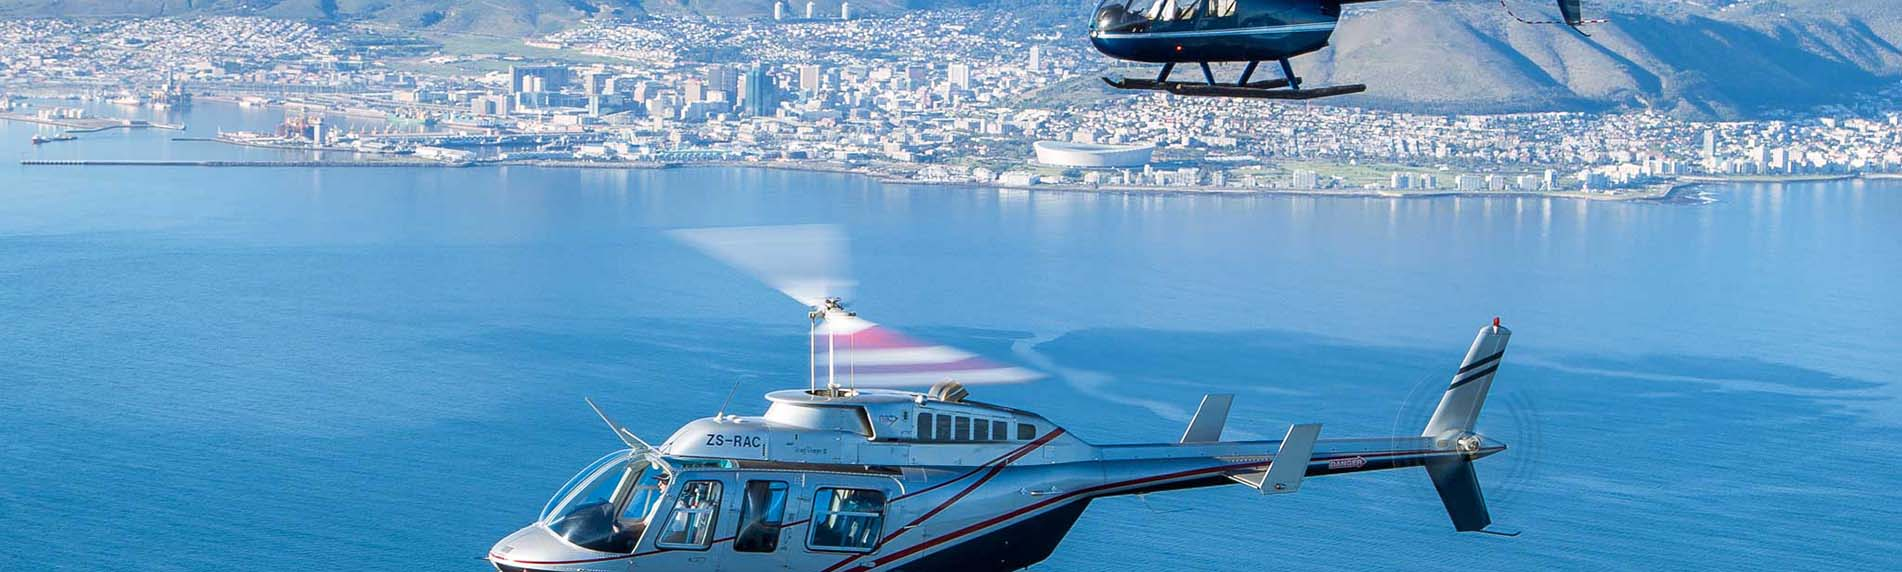 cape town helicopter tour